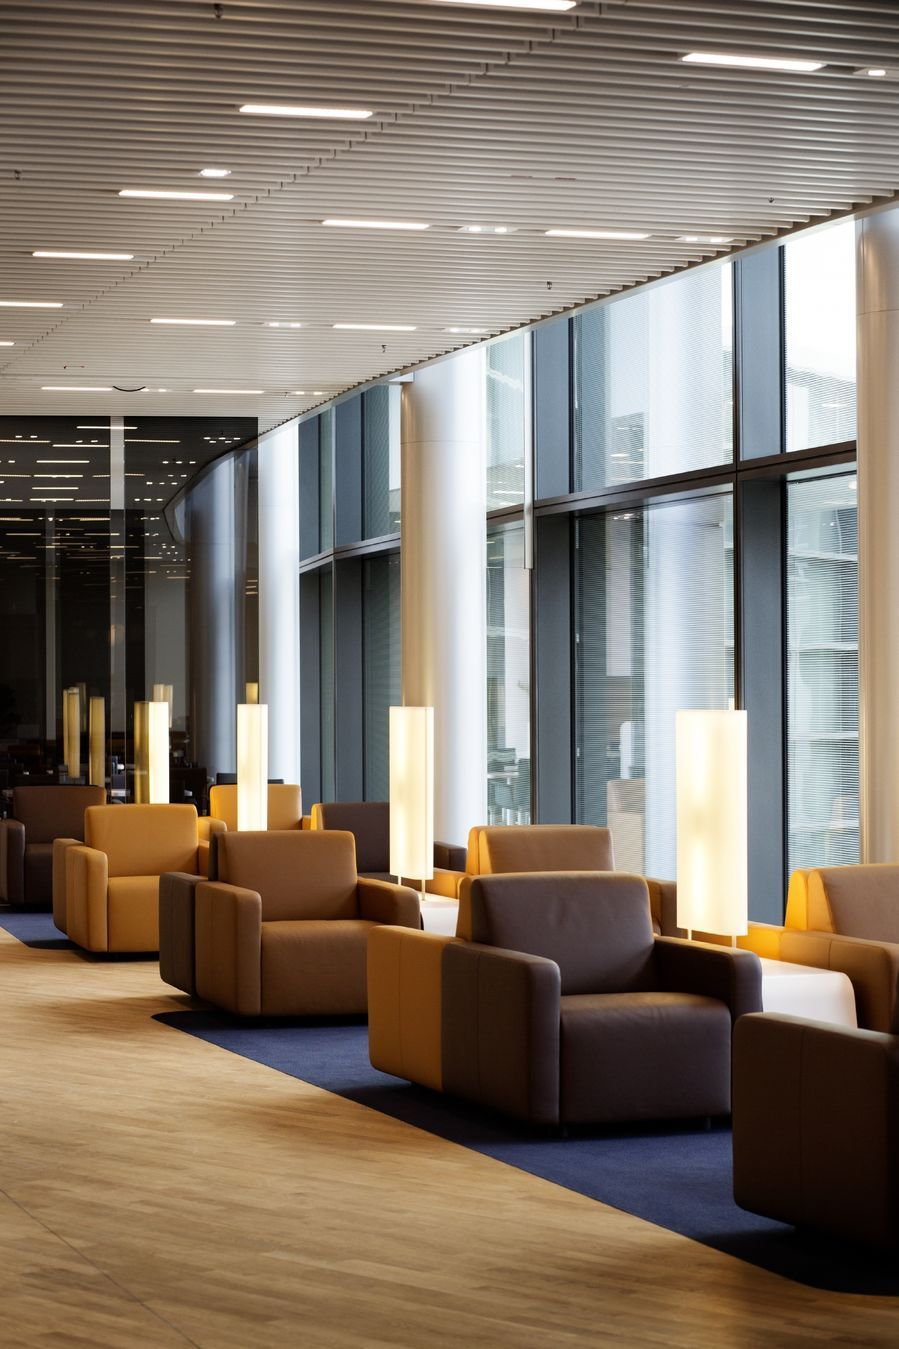 Photos Lufthansa's new lounges at Frankfurt Airport in